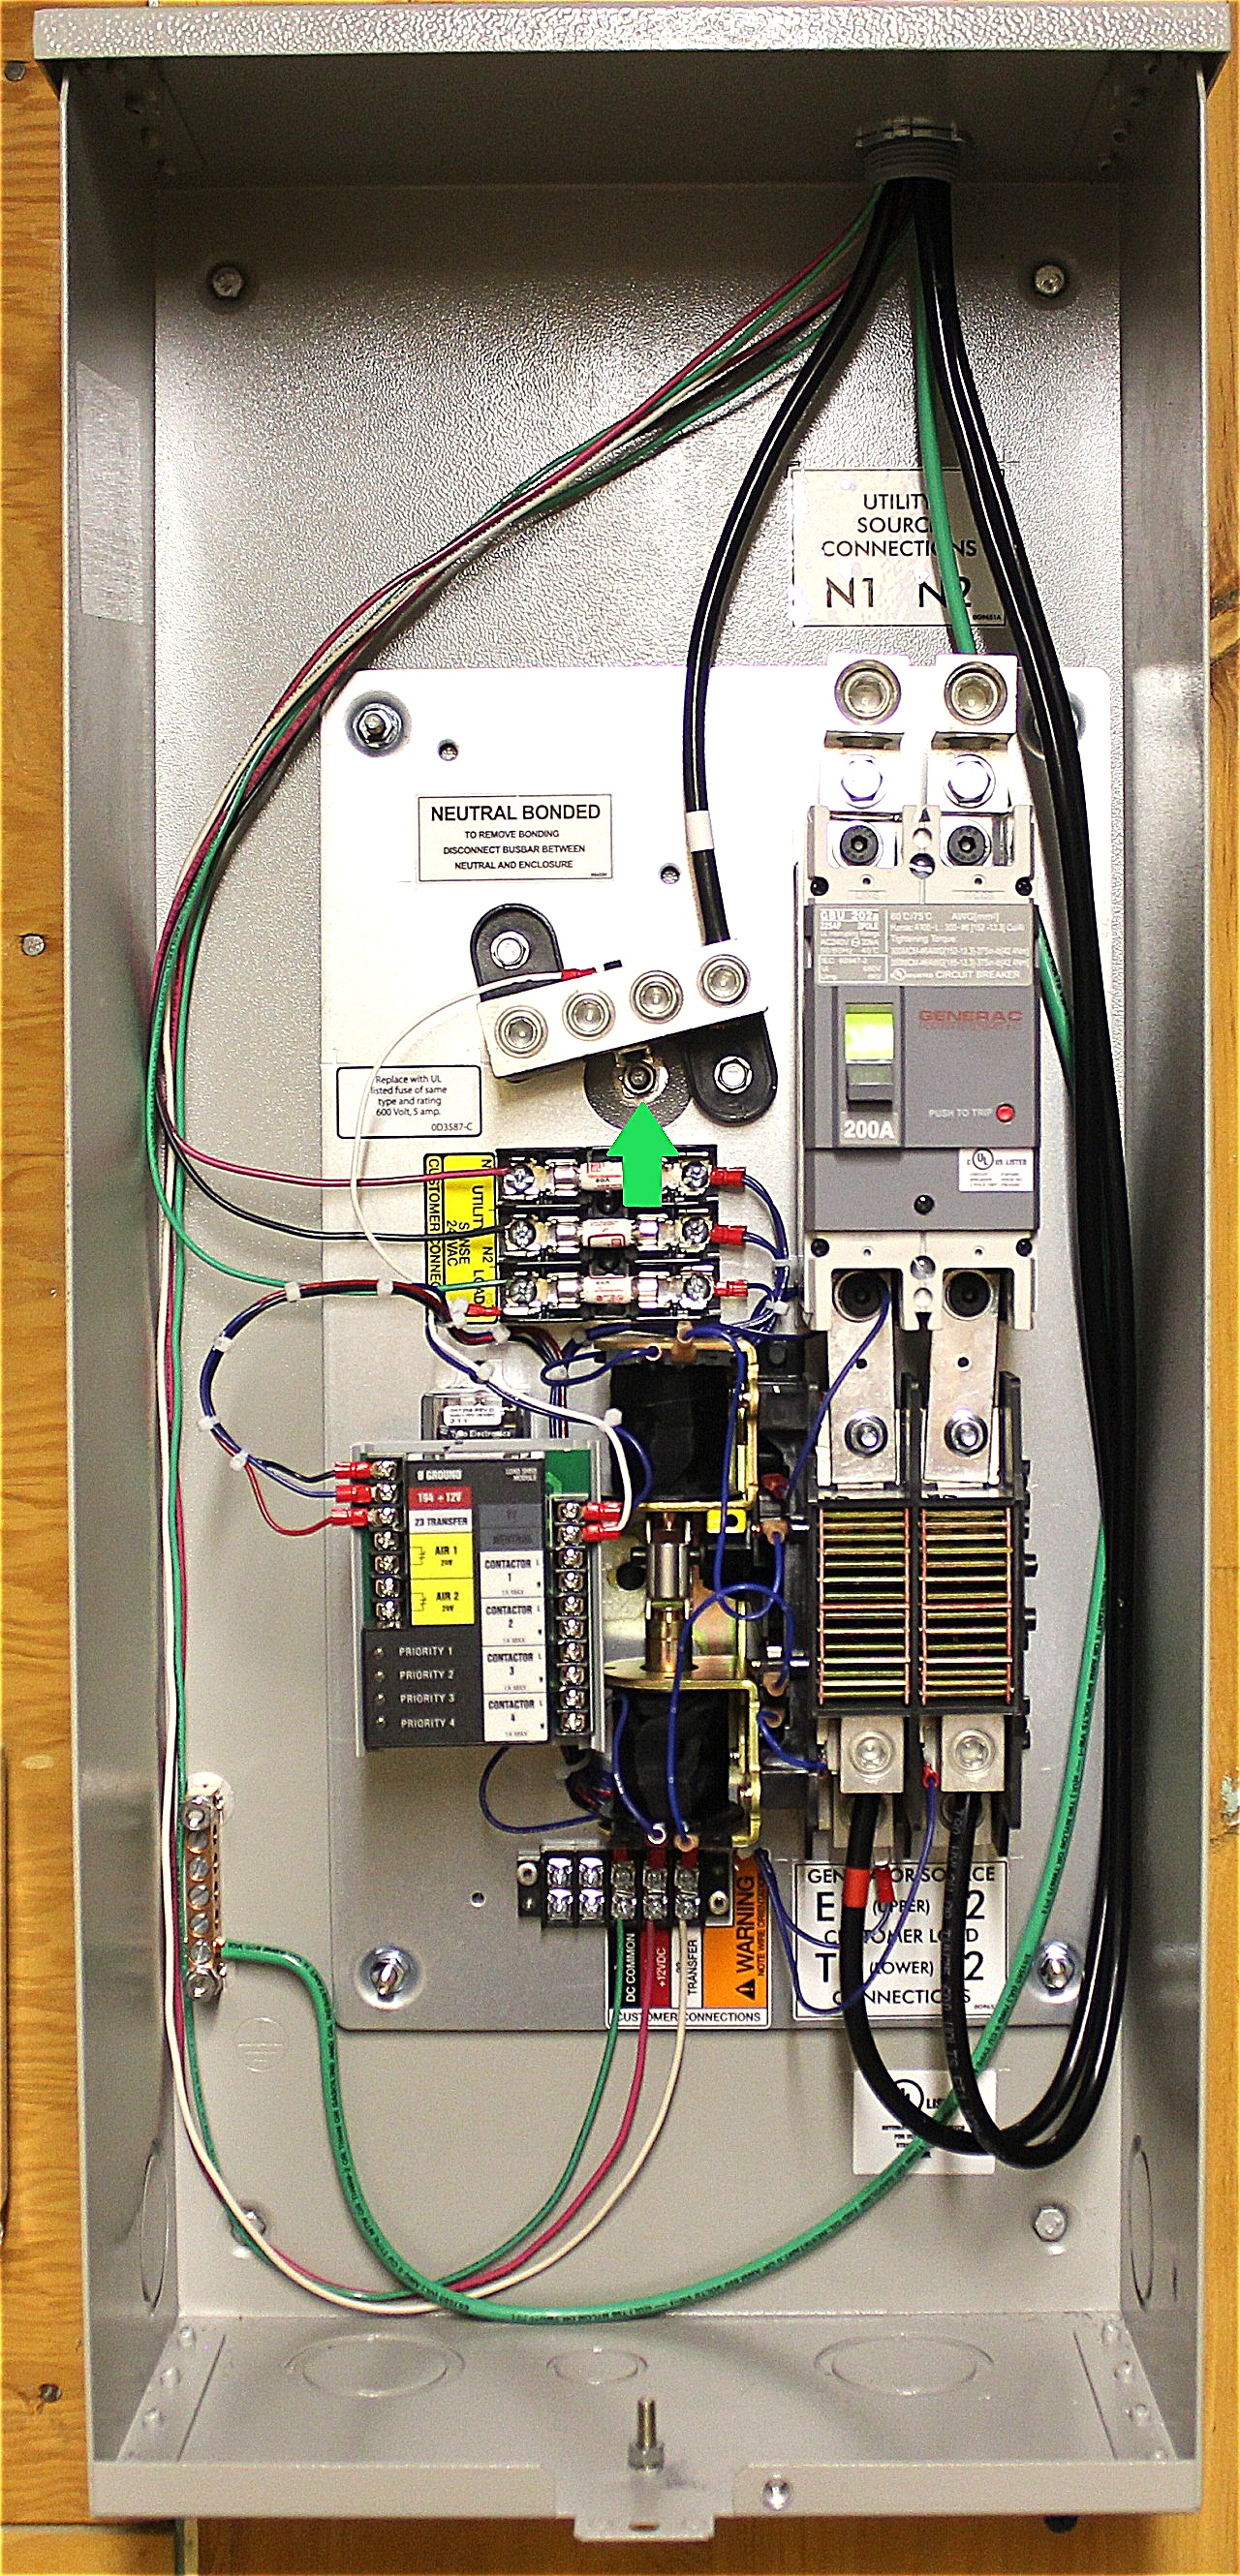 Generac 100 Amp Automatic Transfer Switch Wiring Diagram from static-cdn.imageservice.cloud